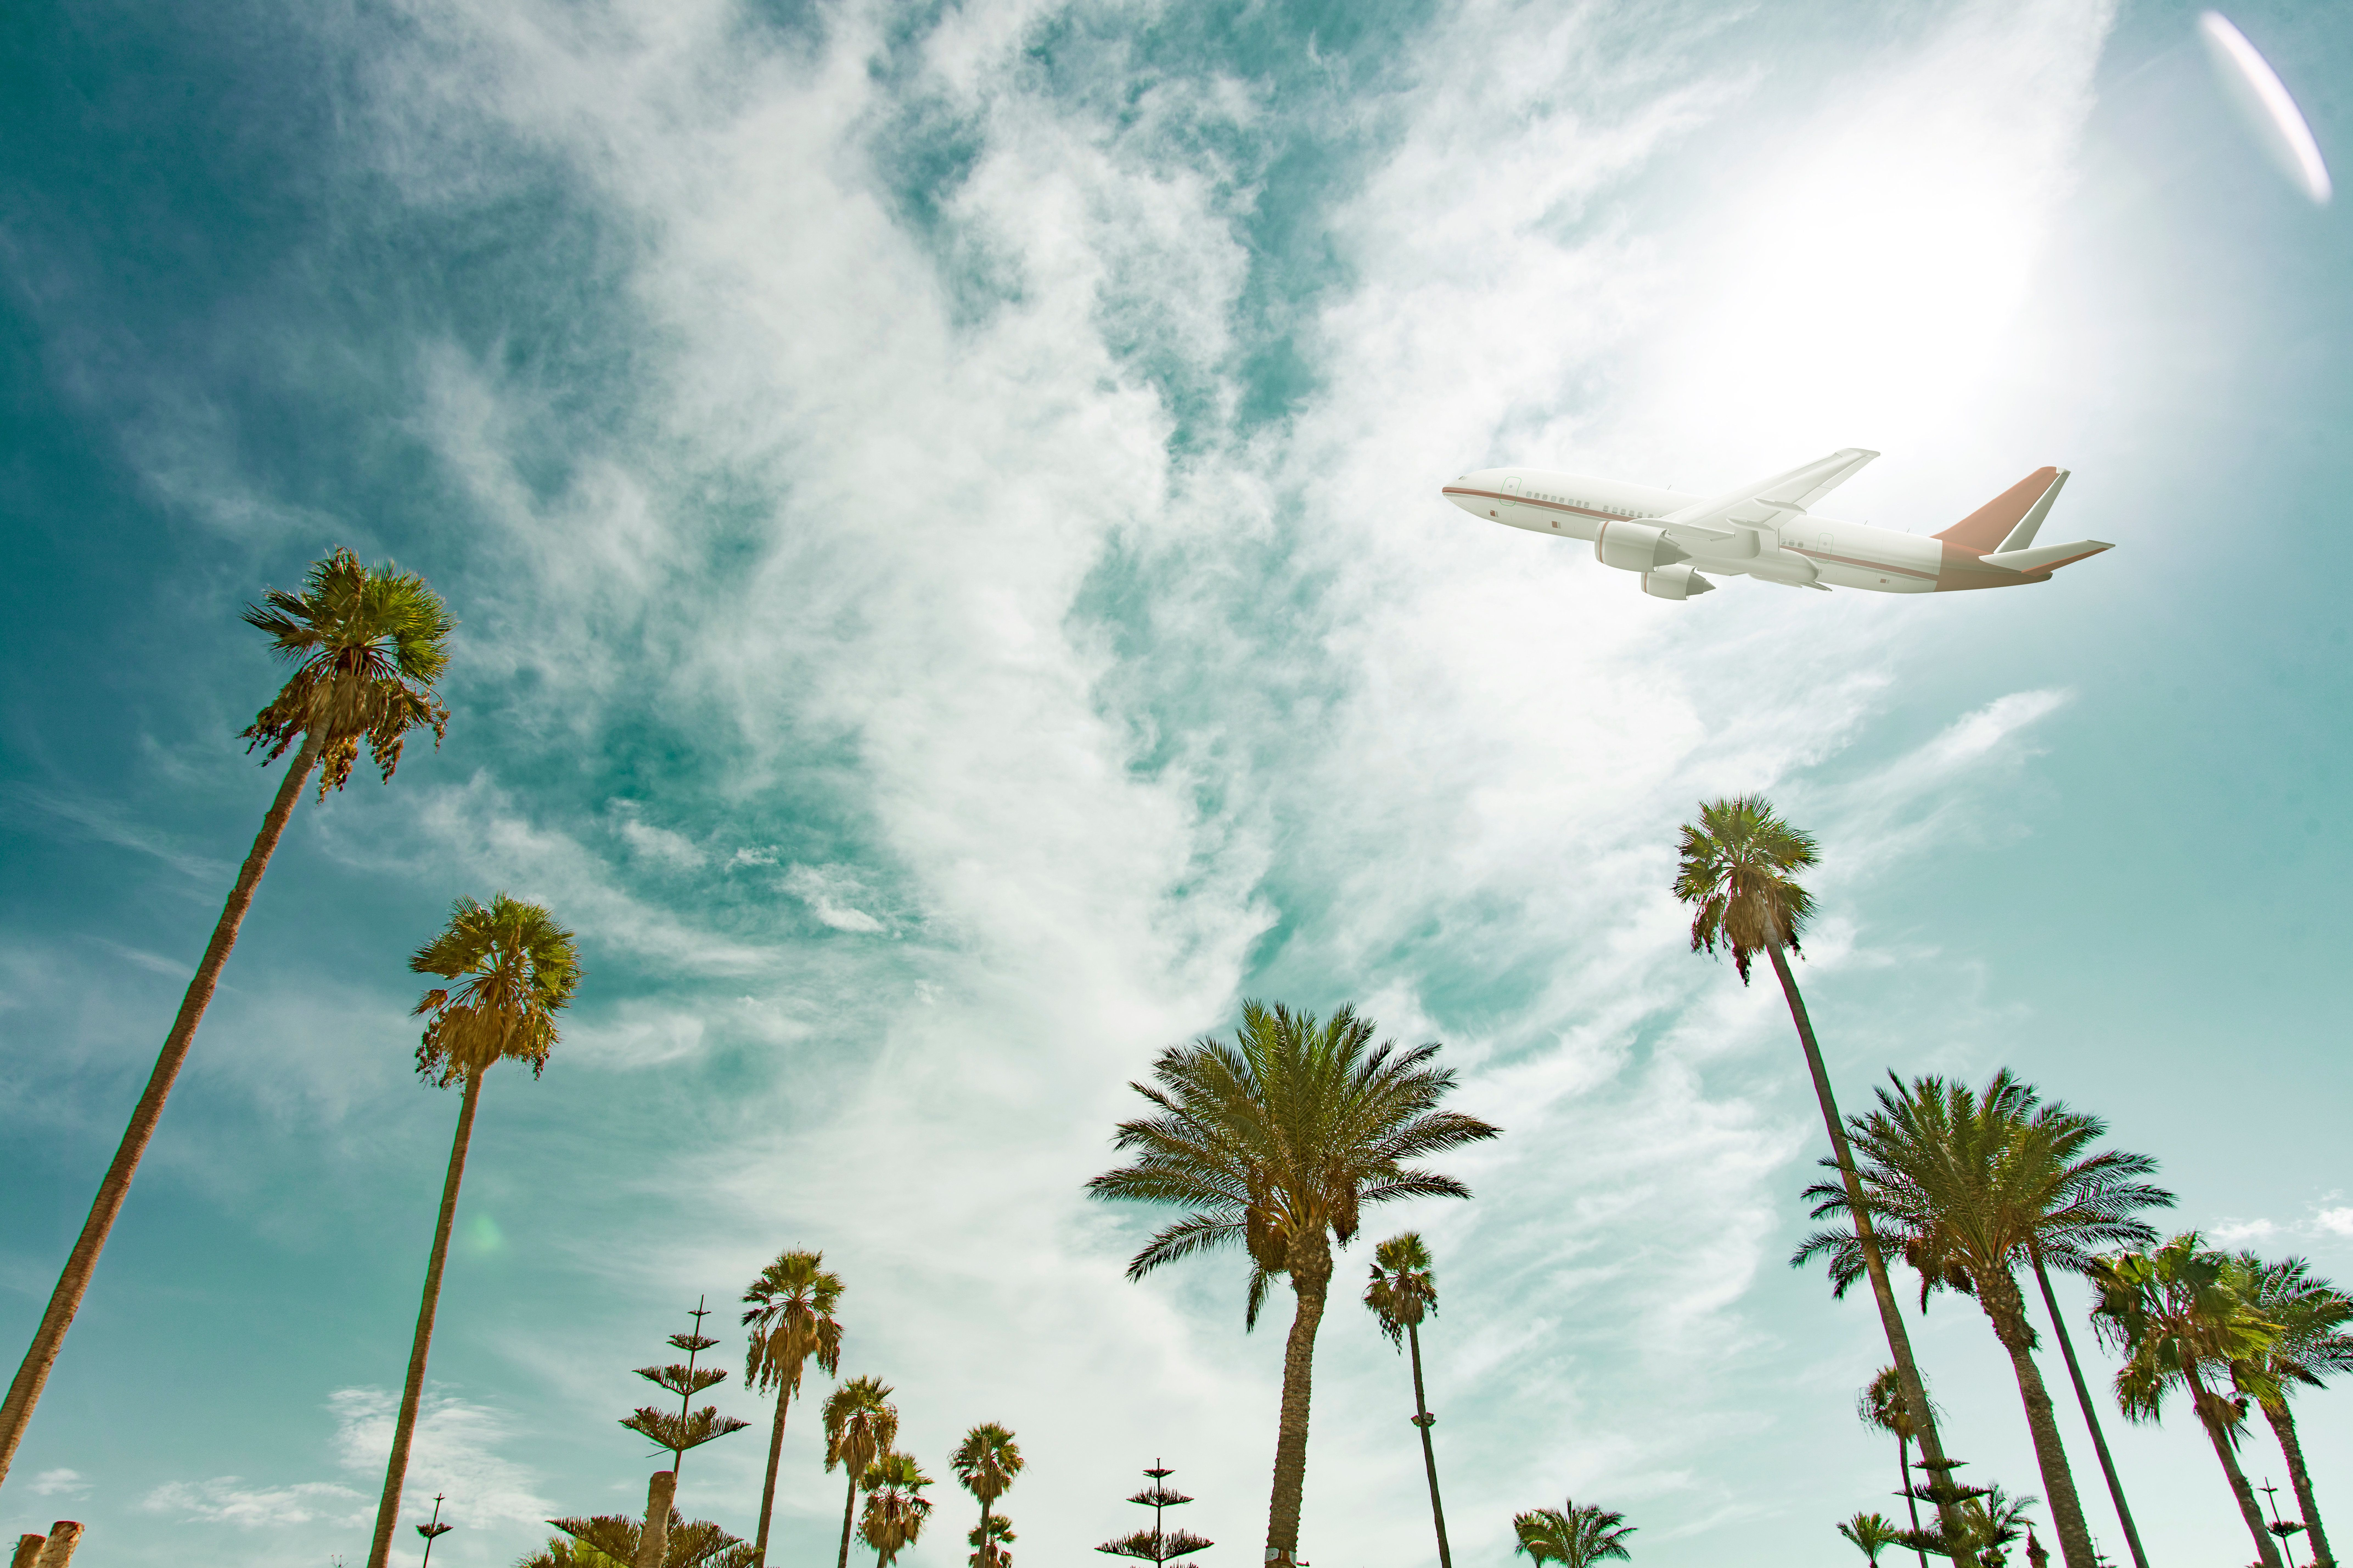 This Is When You Should Book Flights For Your 2018 Holiday To Get The Cheapest